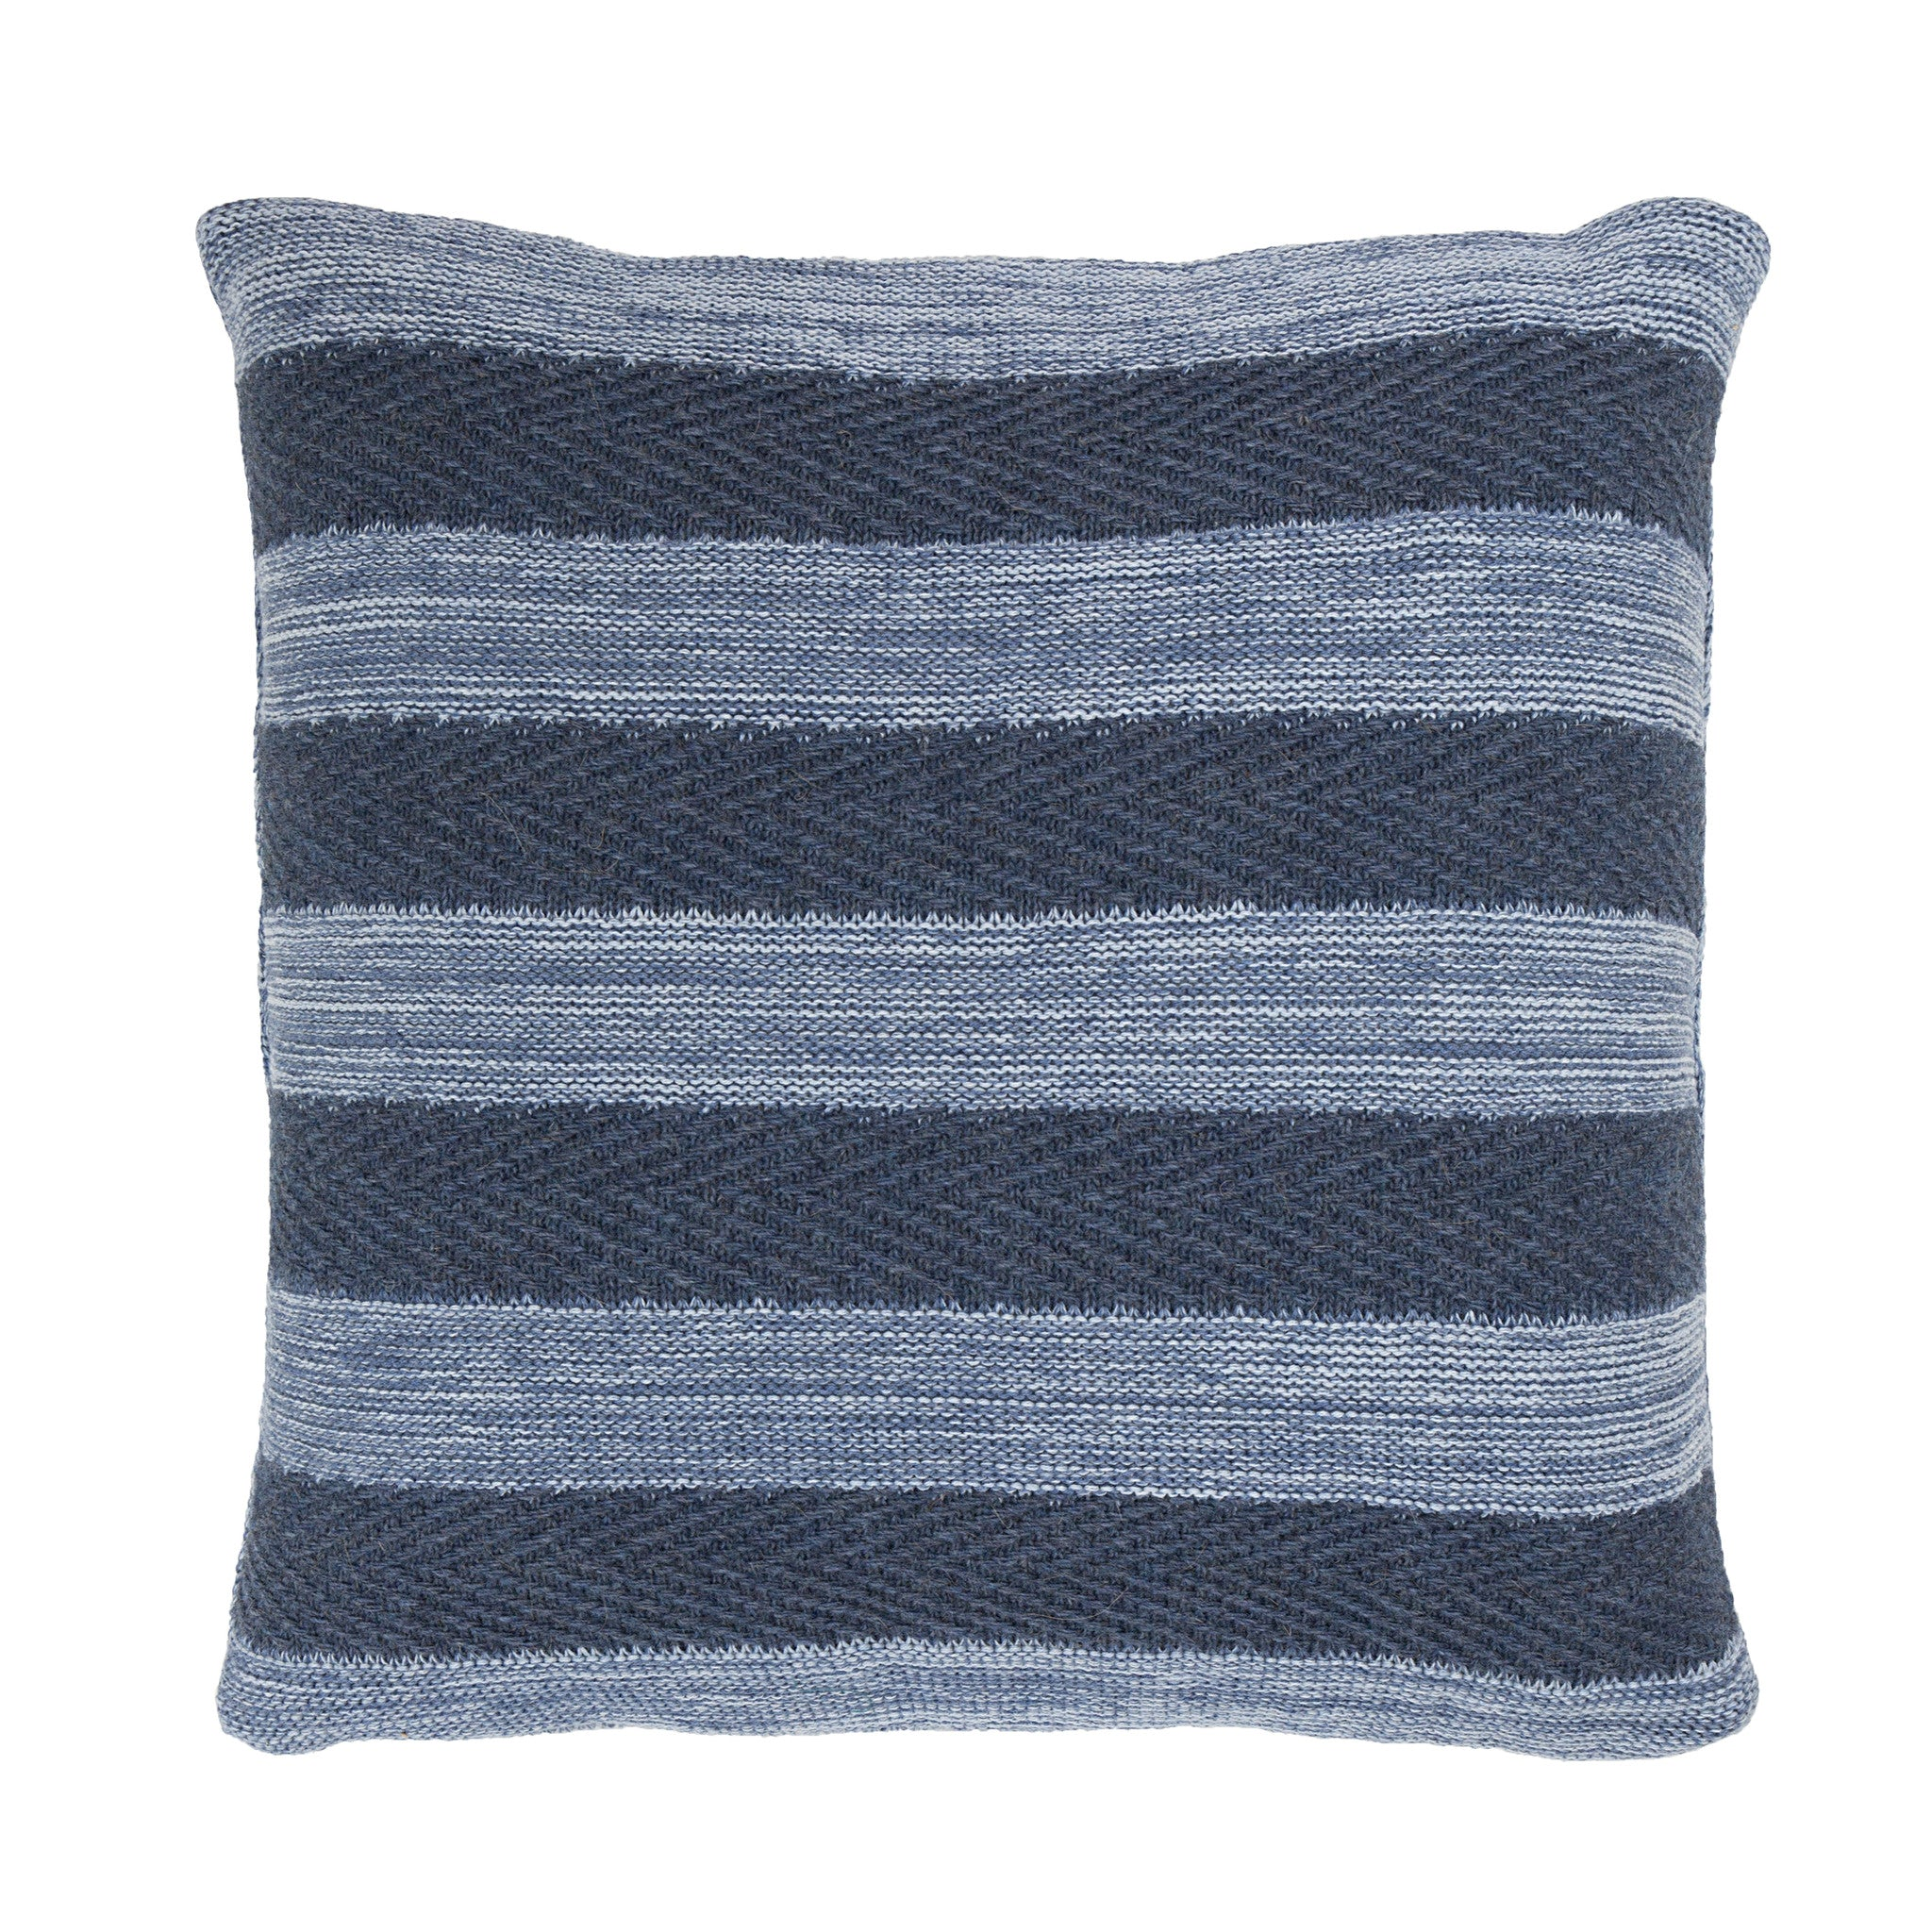 Tactile Stripes cushion, blue